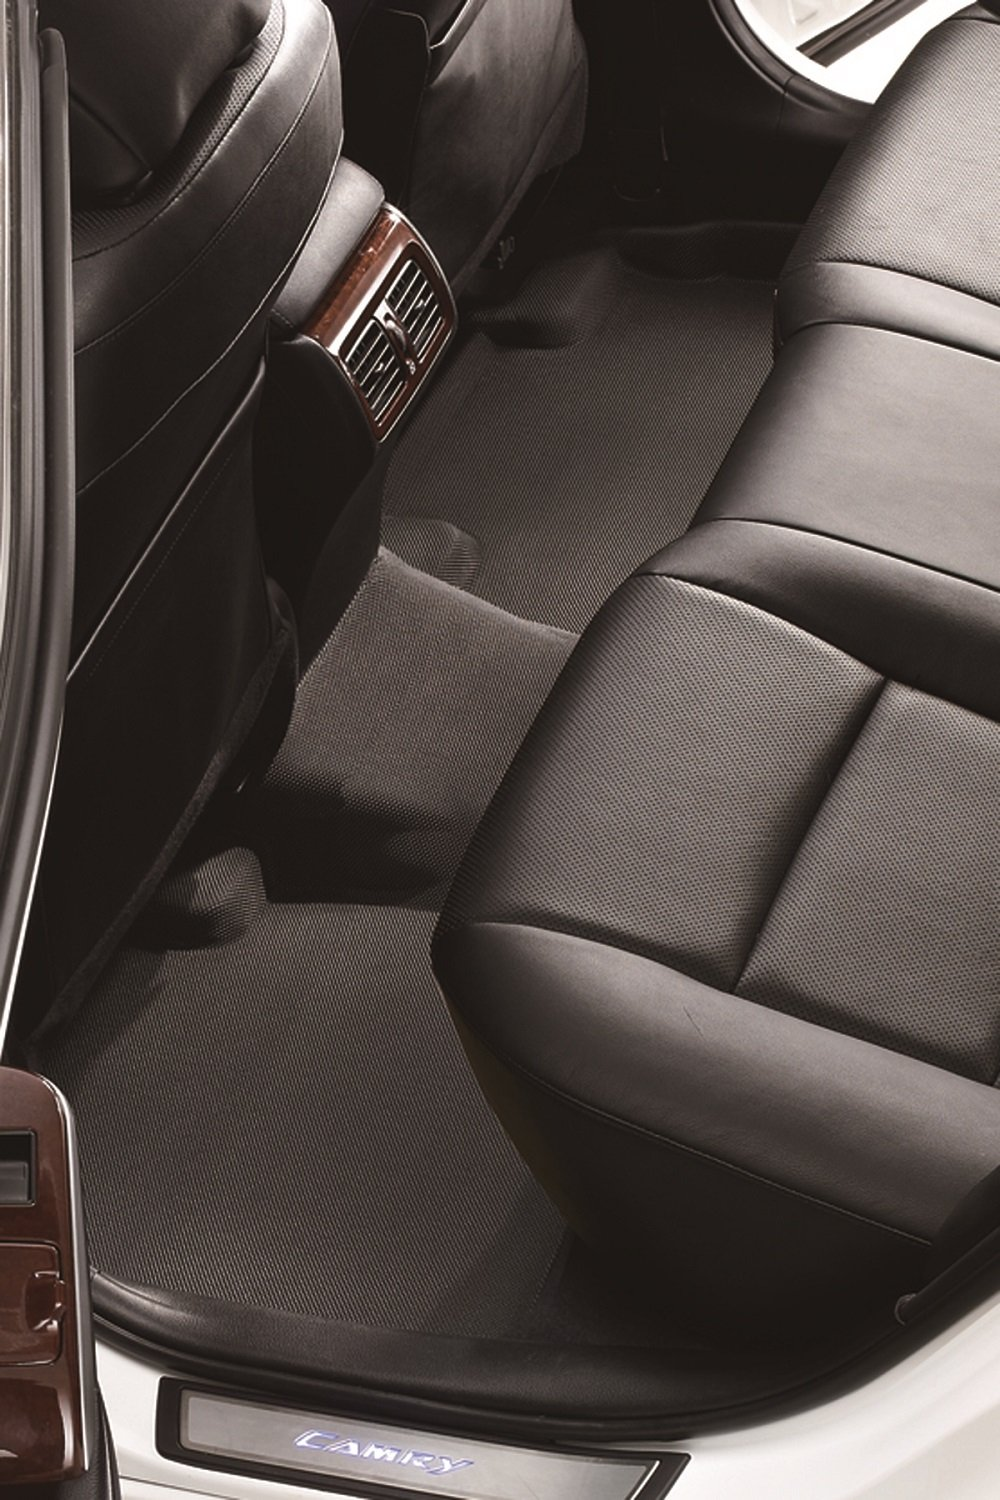 3D MAXpider Front Row Custom Fit Floor Mat for Select Scion XB Models Gray L1SC00511501 Kagu Rubber